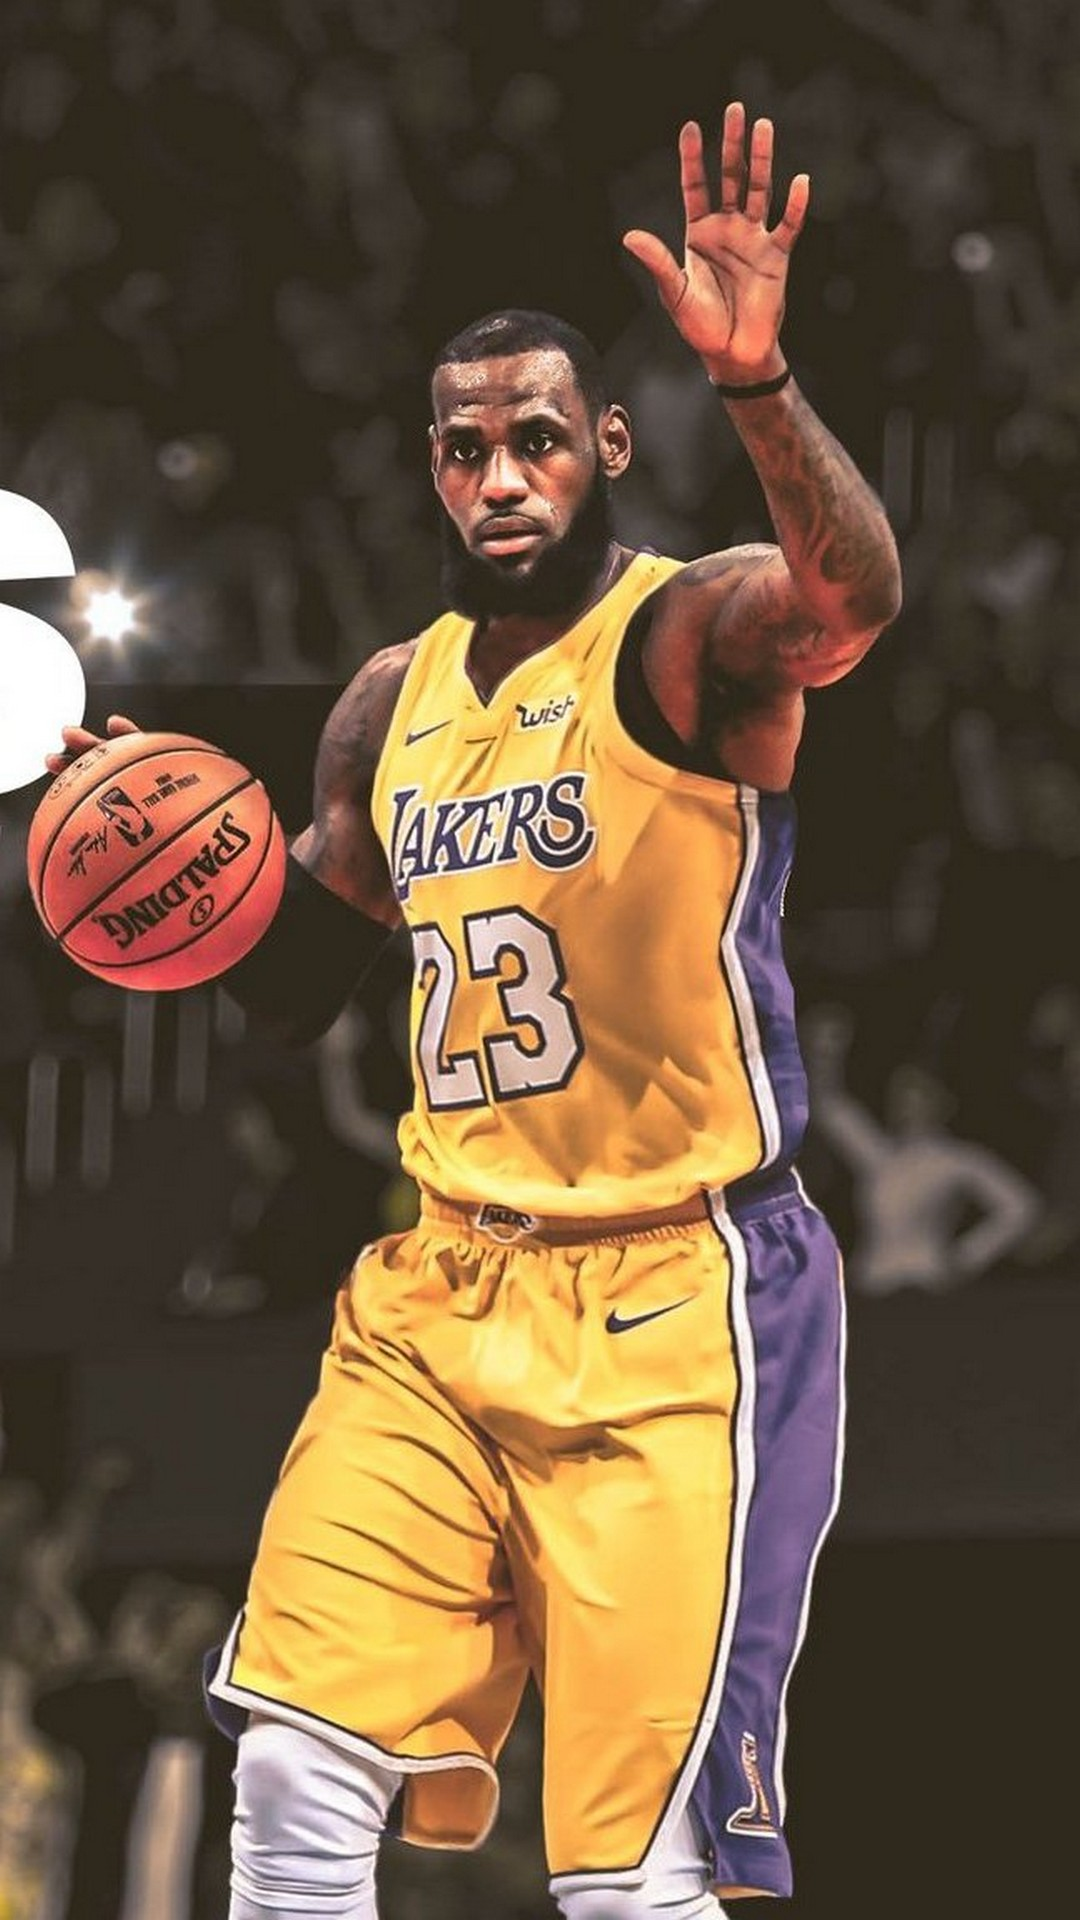 Mobile Wallpapers Lebron James Lakers 2020 3D iPhone Wallpaper 1080x1920